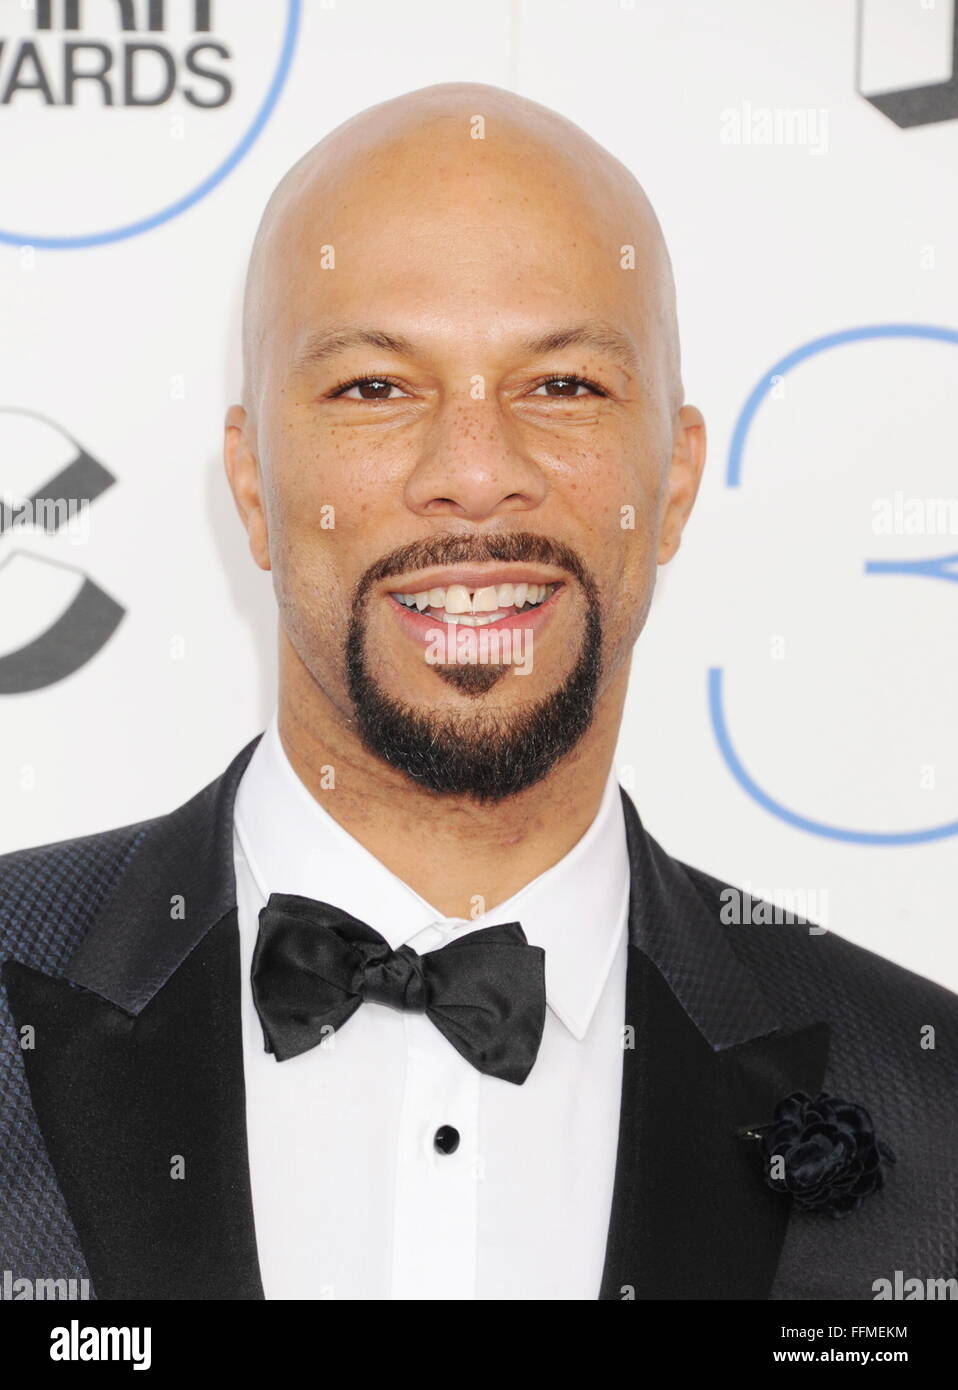 Common Rapper High Resolution Stock Photography And Images Alamy